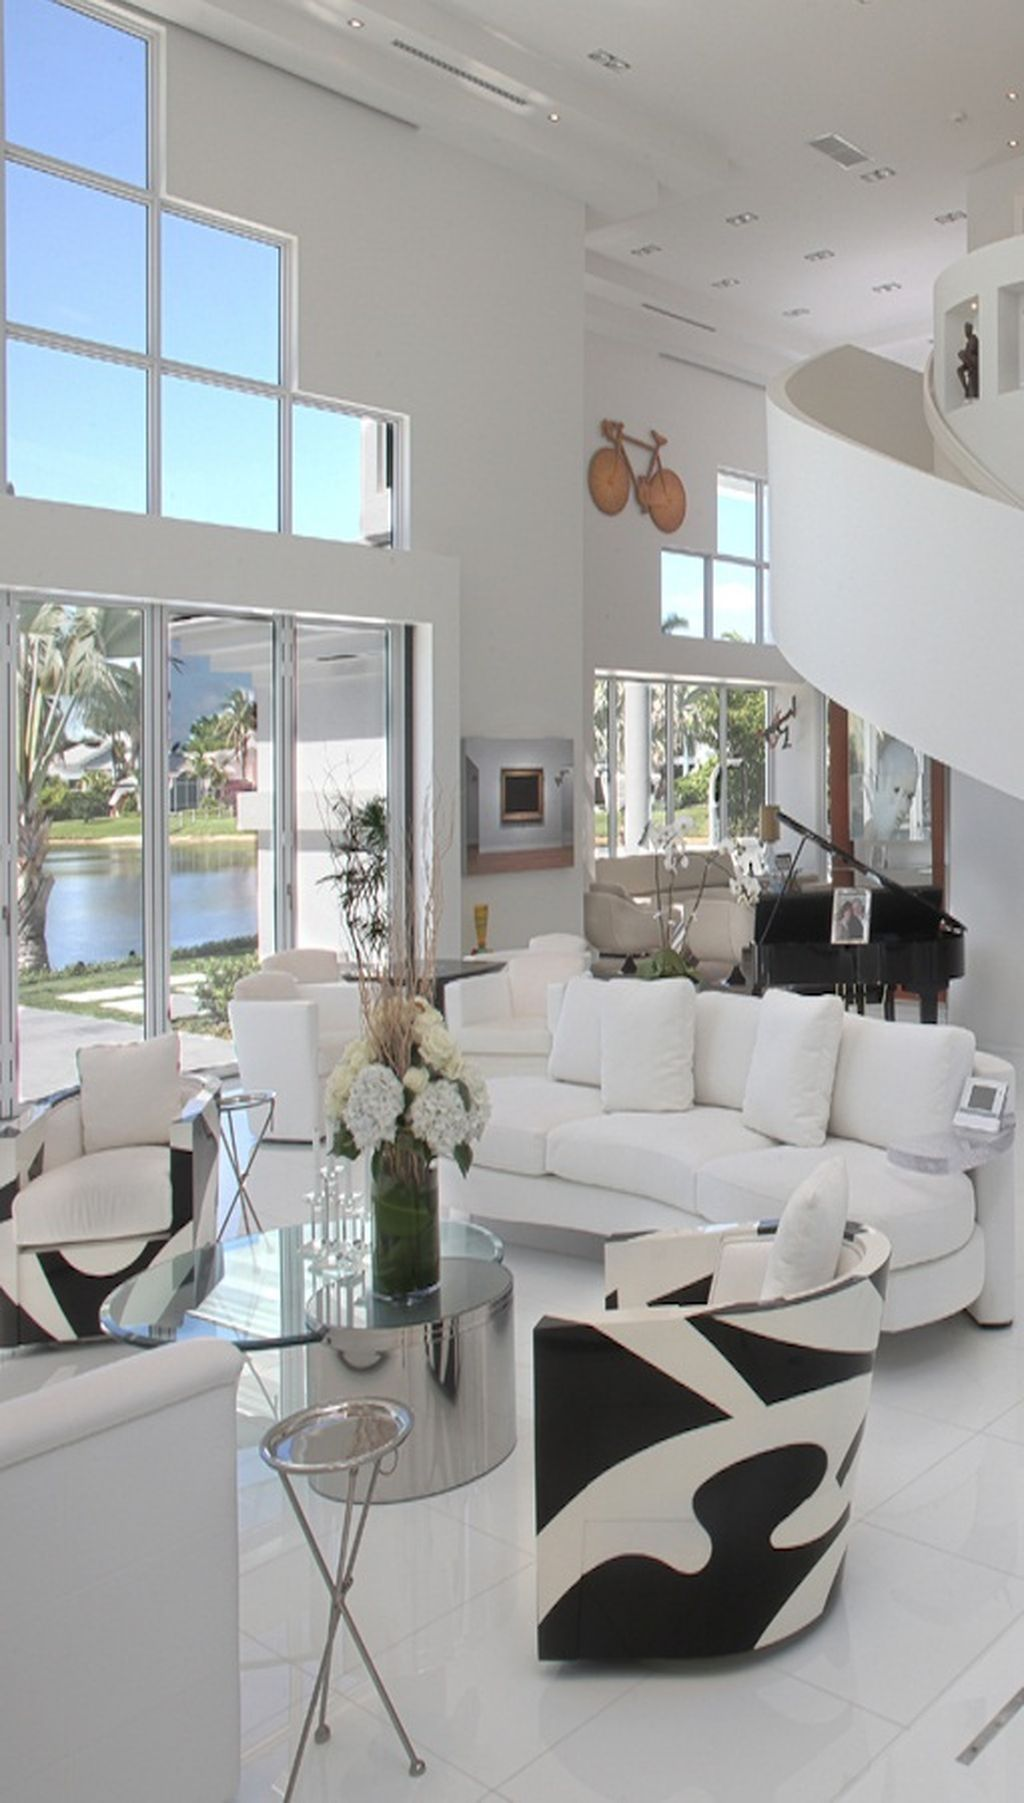 48 Beautiful Black And White Interior Design Living Room Décor Ideas images